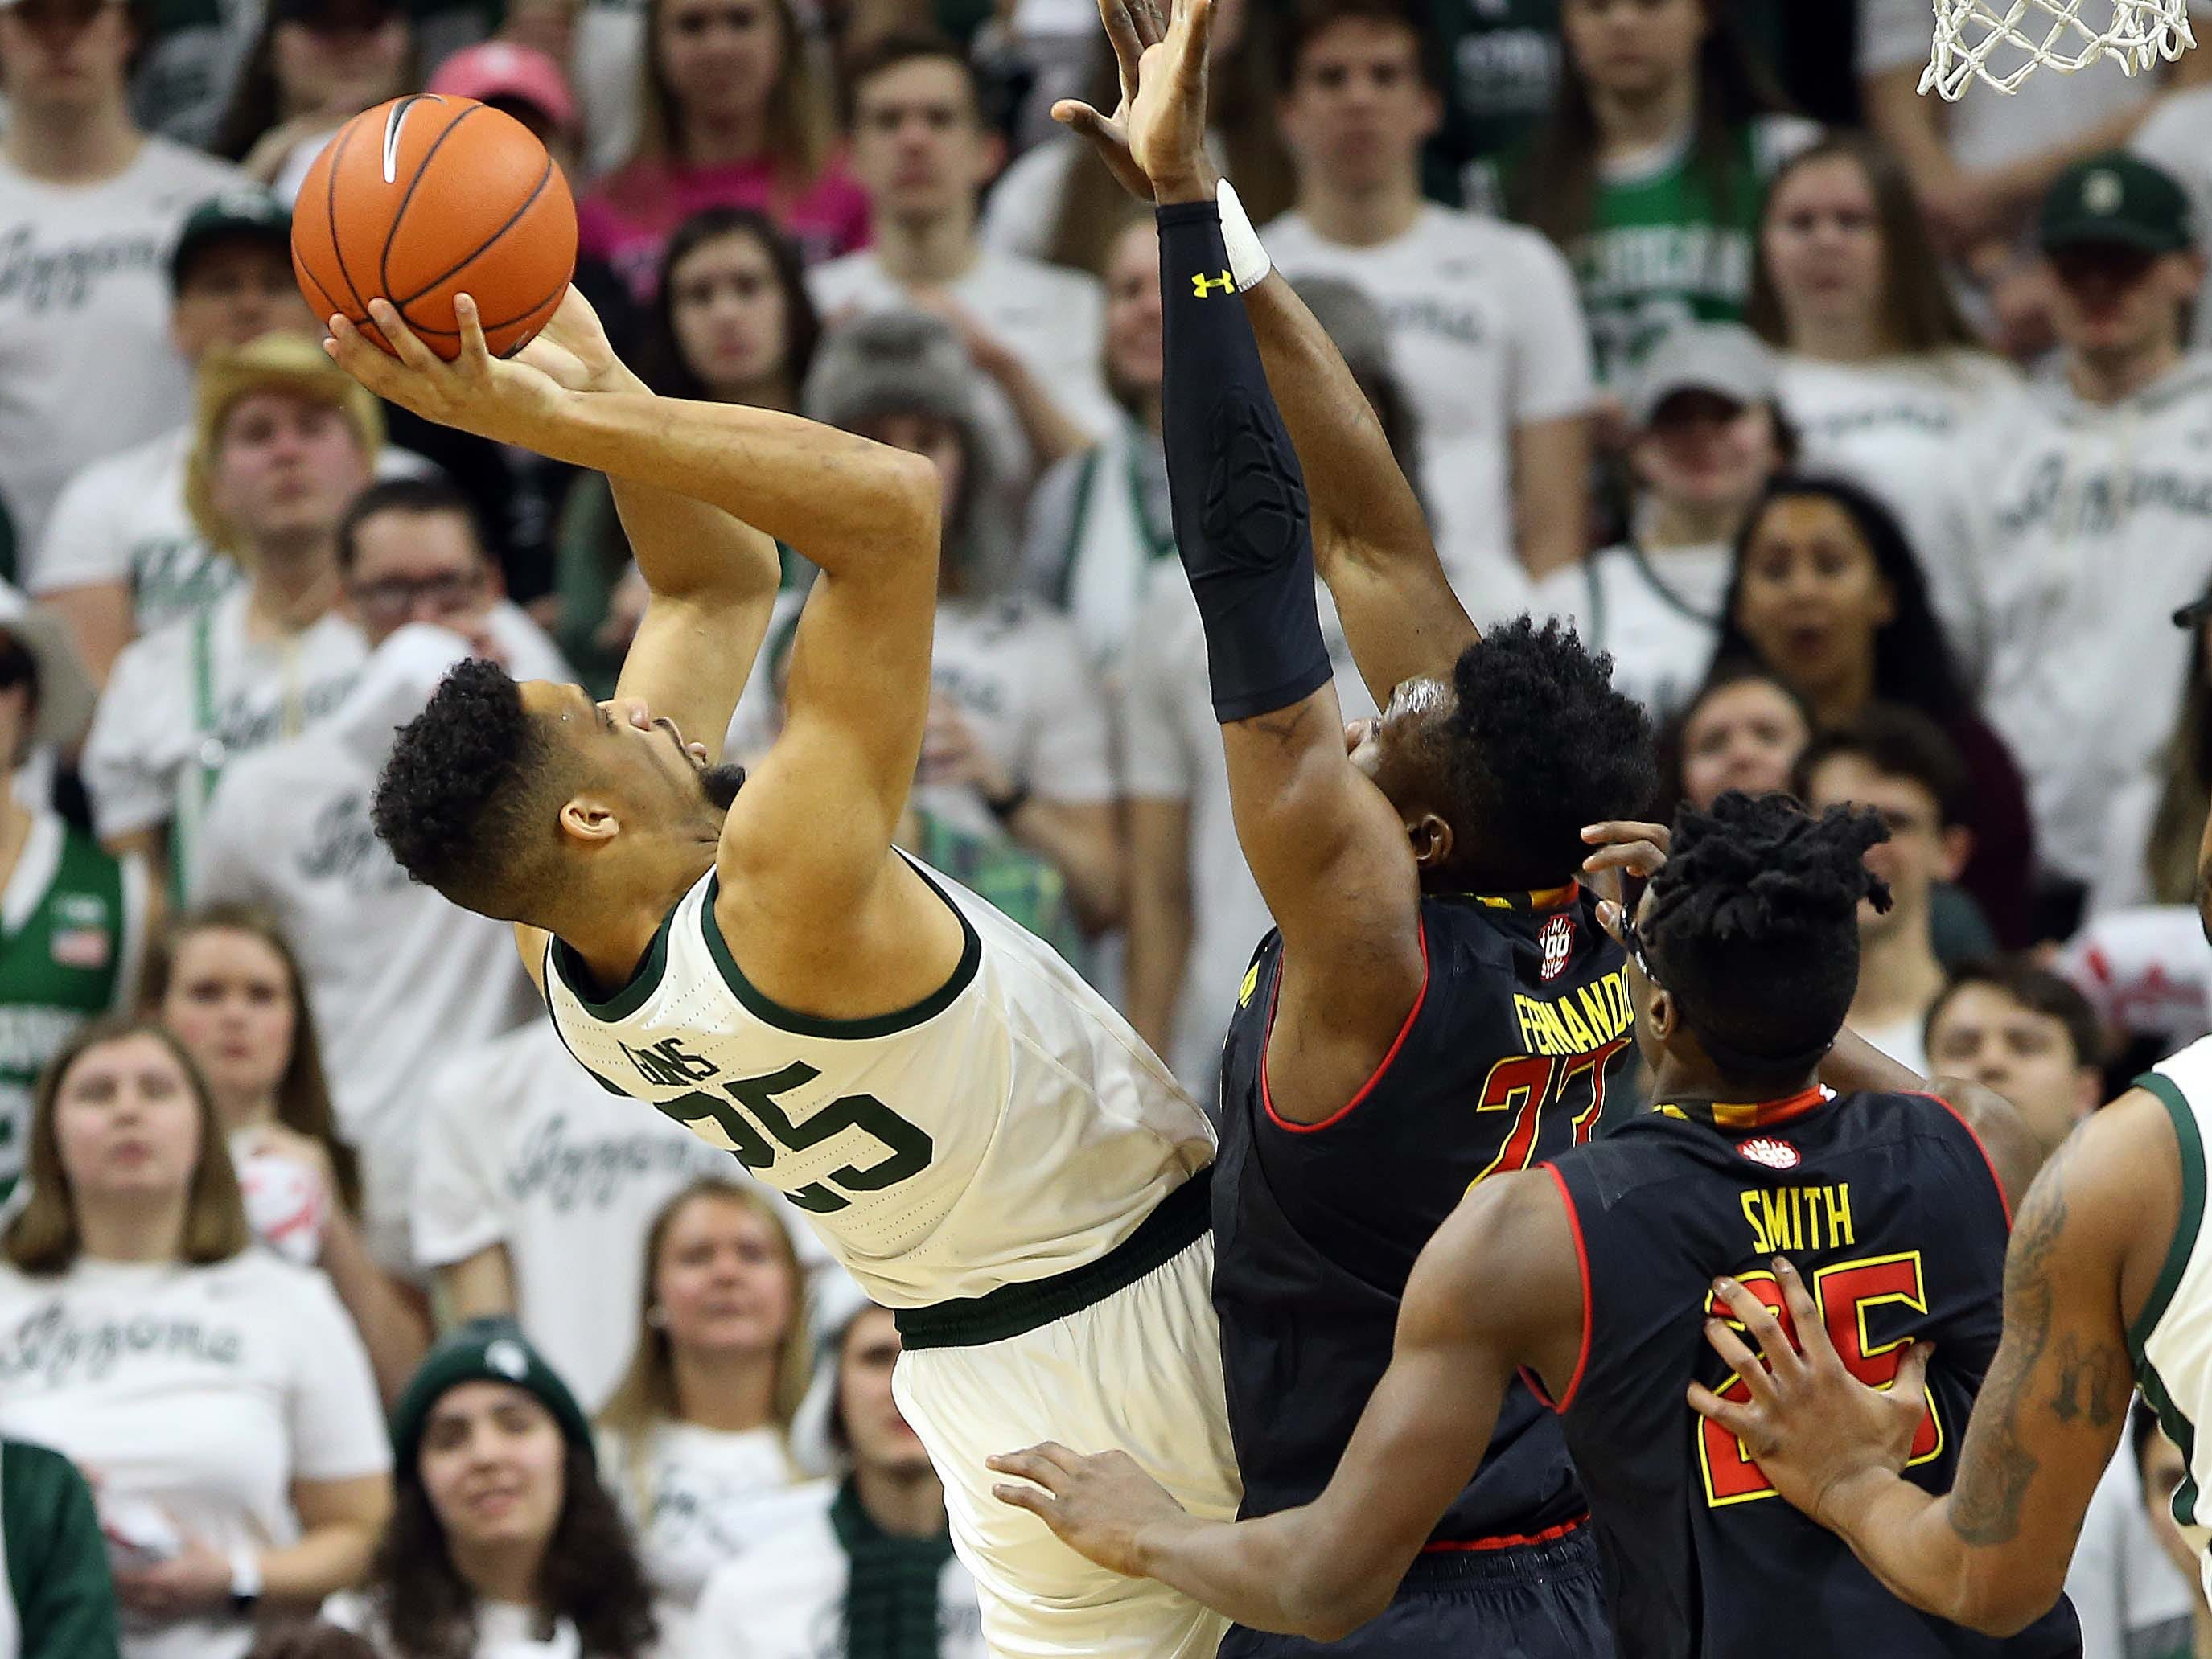 Michigan State Spartans forward Kenny Goins (25) is defended by Maryland Terrapins forward Bruno Fernando (23) during the first half of a game at the Breslin Center.